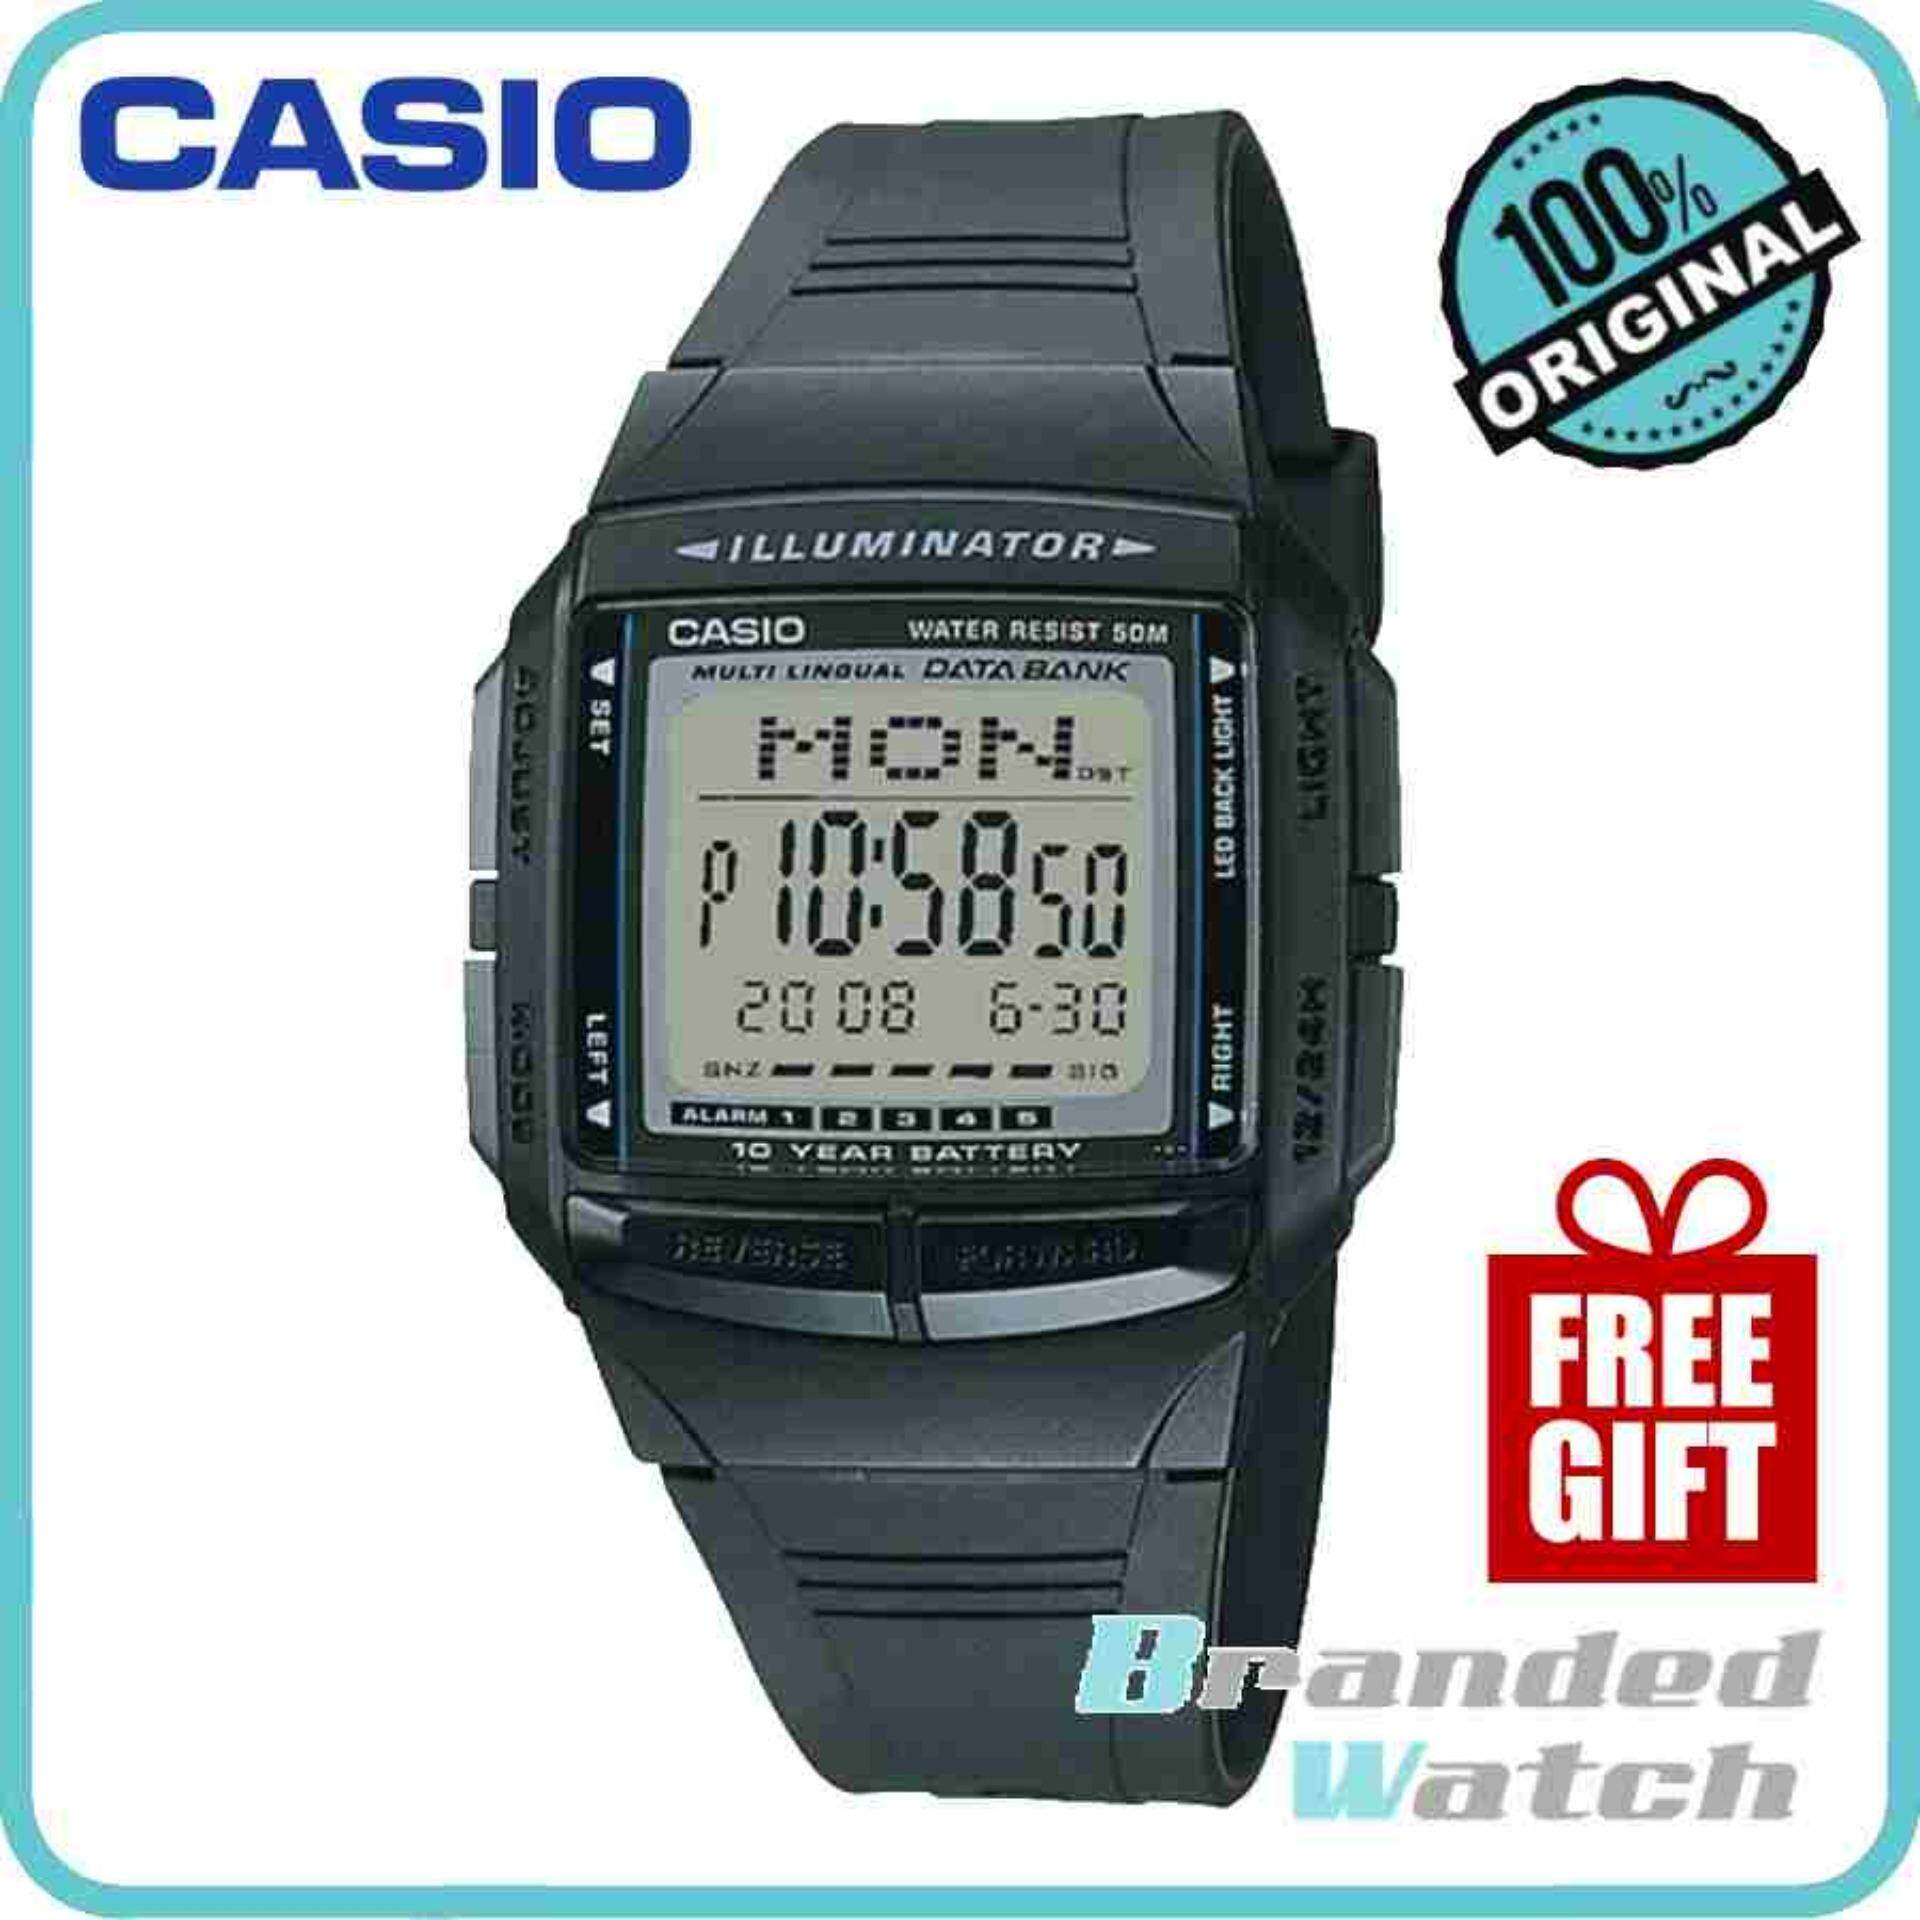 Casio ORIGINAL DB-36-1AVDF Man Data Bank Digital 10 Year Battery Life Casual Resin Watch Kids / Unisex DB-36-1AV DB-36-1A Malaysia